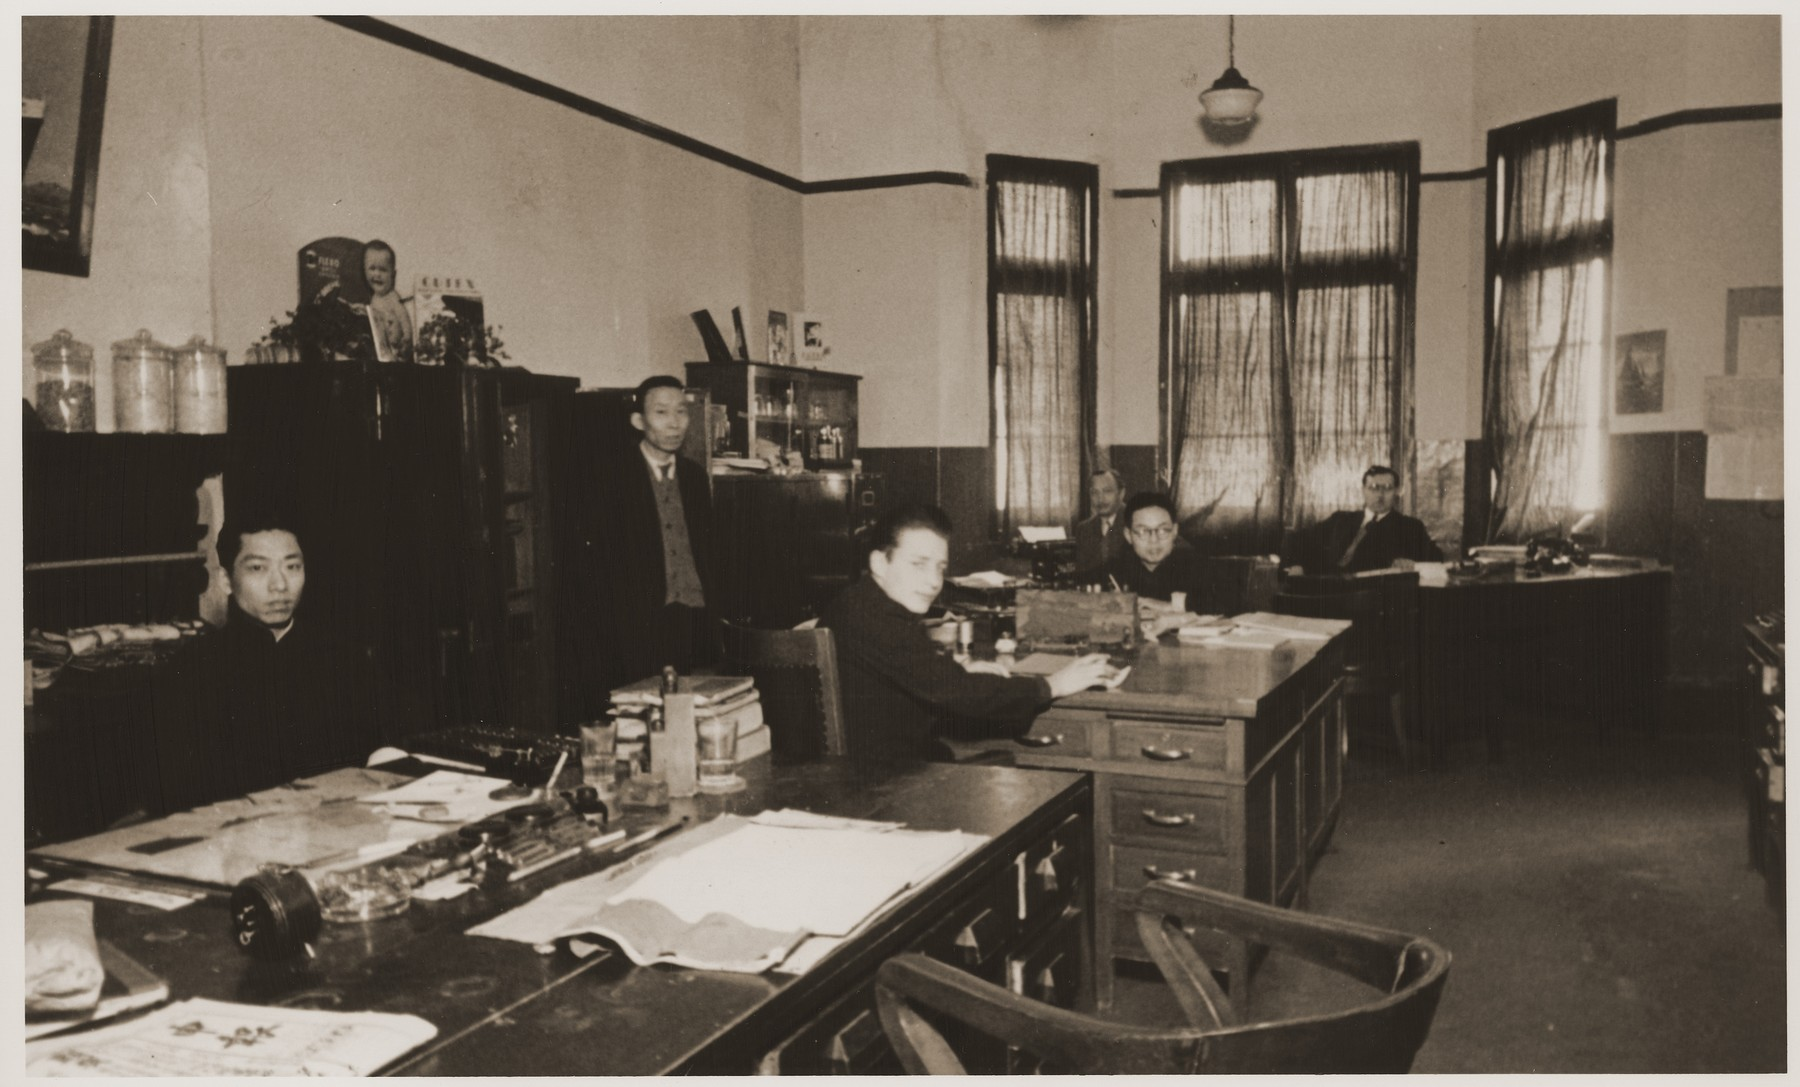 Staff members at work in the offices of the International Committee for European Immigrants in China.  Among those pictured is Eric Goldstaub (seated in the center).  Pictured seated at the desks in the back are Paul Komor, co-founder of  the International Committee for European Immigrants in China, and his brother-in-law, Jack Rogalsky (right, wearing glasses).   Mr. Rogalsky immigrated with his wife and daughter to Toronto in 1949, and died in 1974.